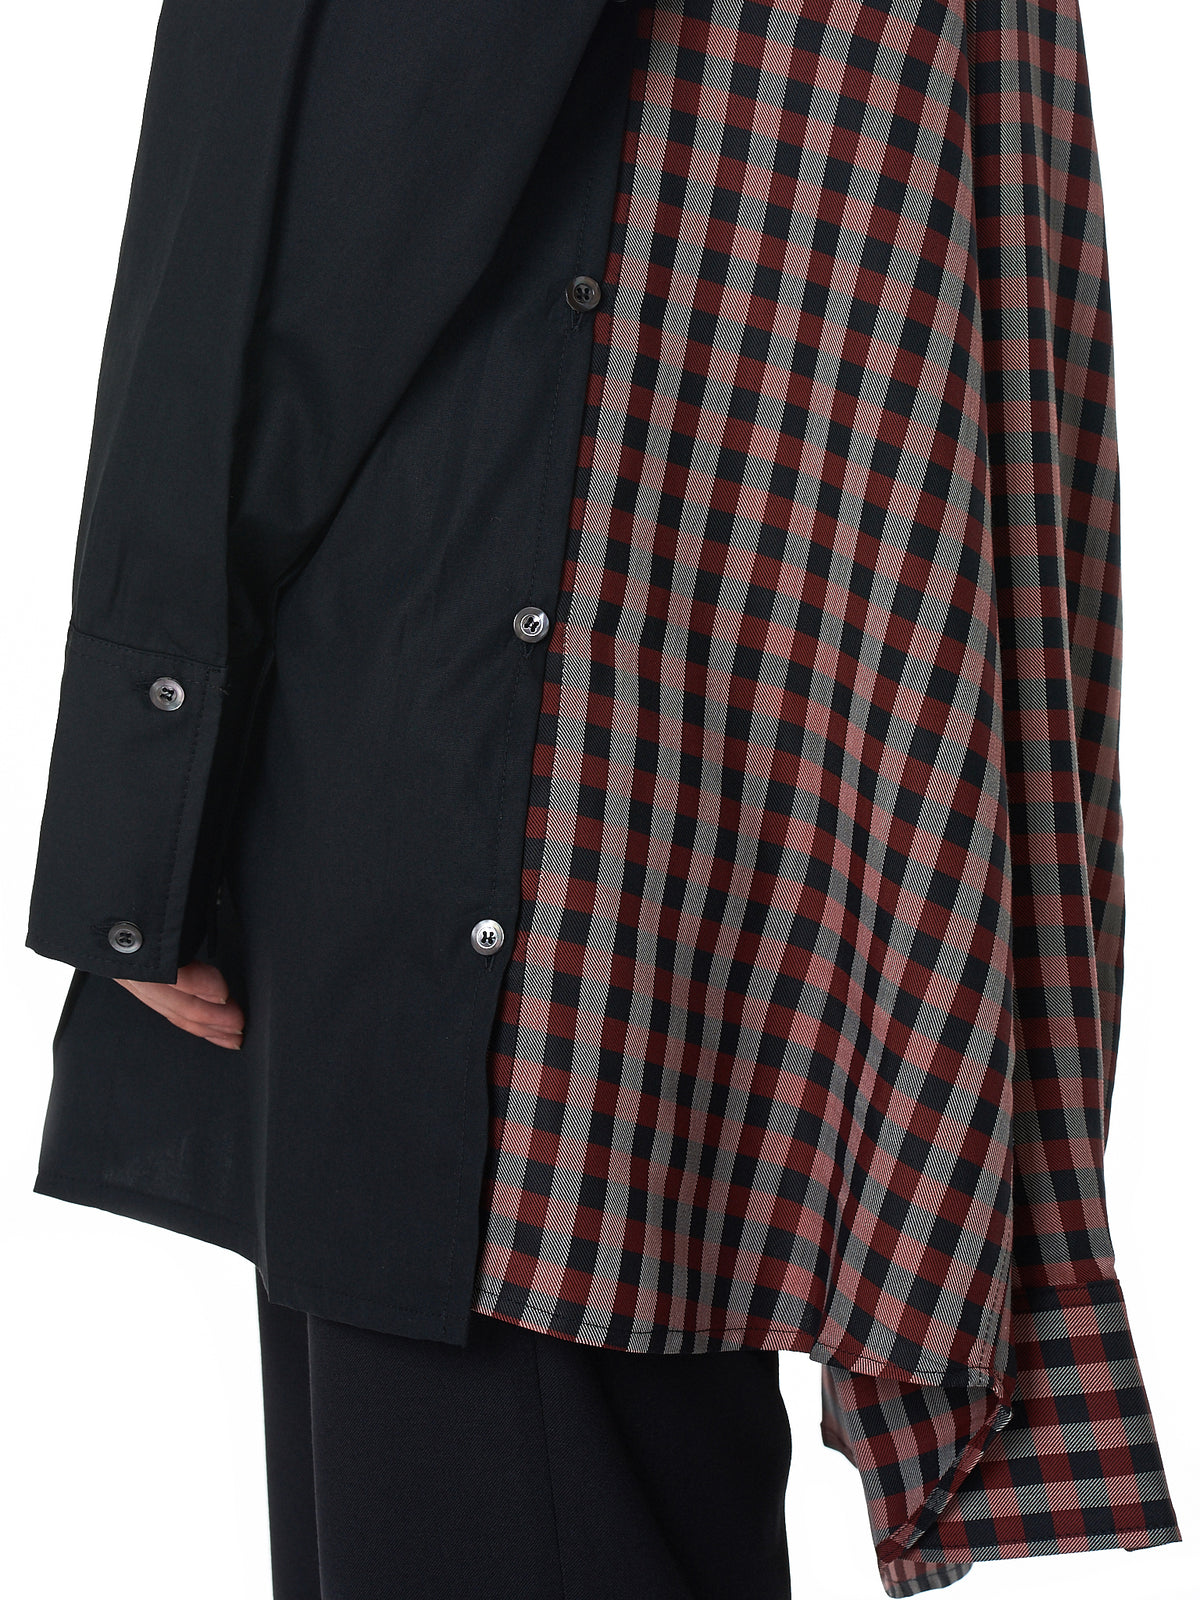 Double Shirt (DW4DR1-BLACK-RED-CHECK)